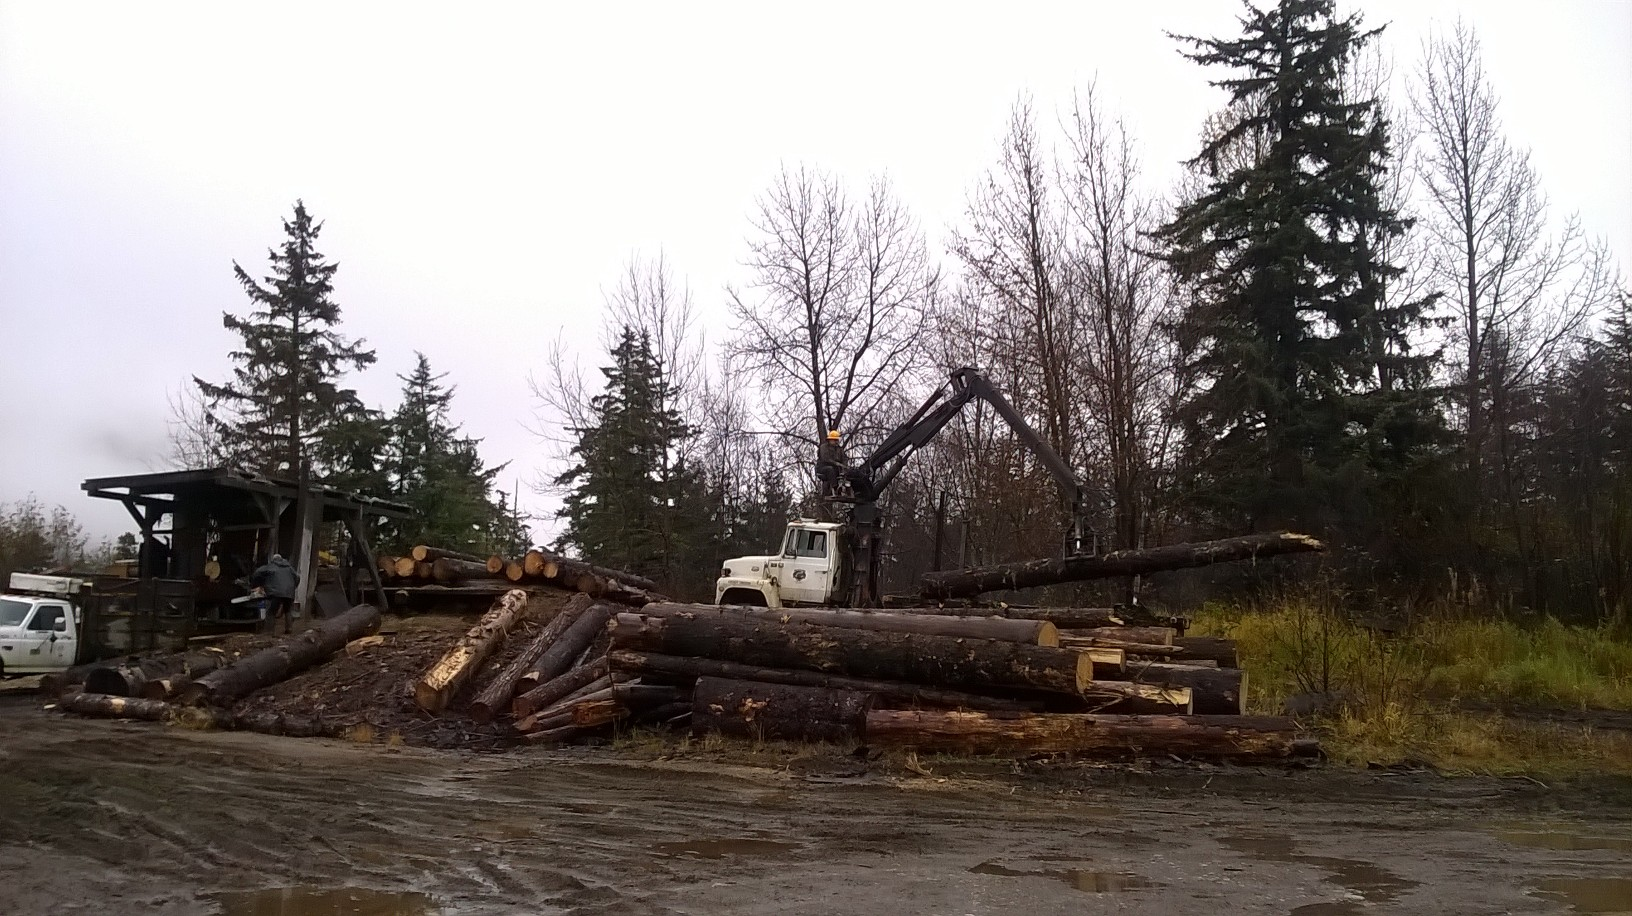 The Stump Company timber operator in Haines